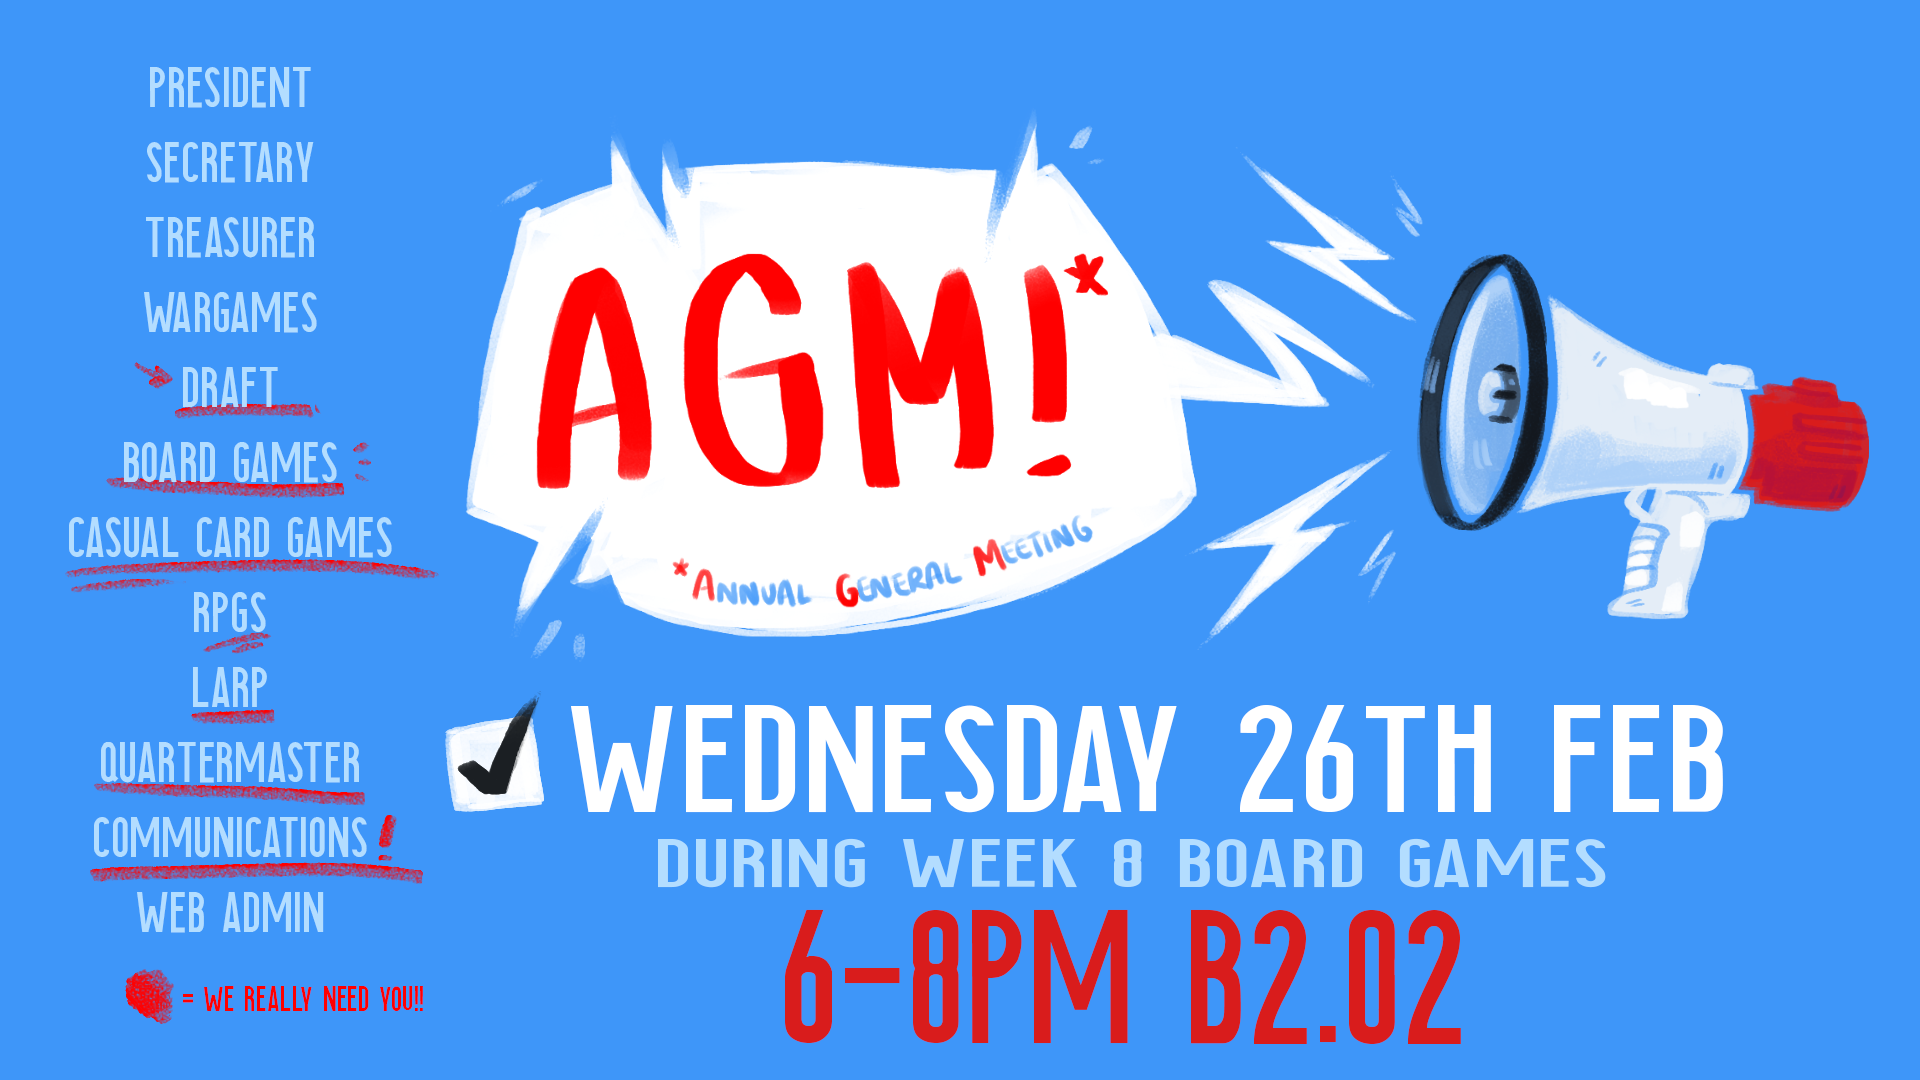 AGM 2020 Poster: running on Wednesday 26th February, 6-8pm B2.02